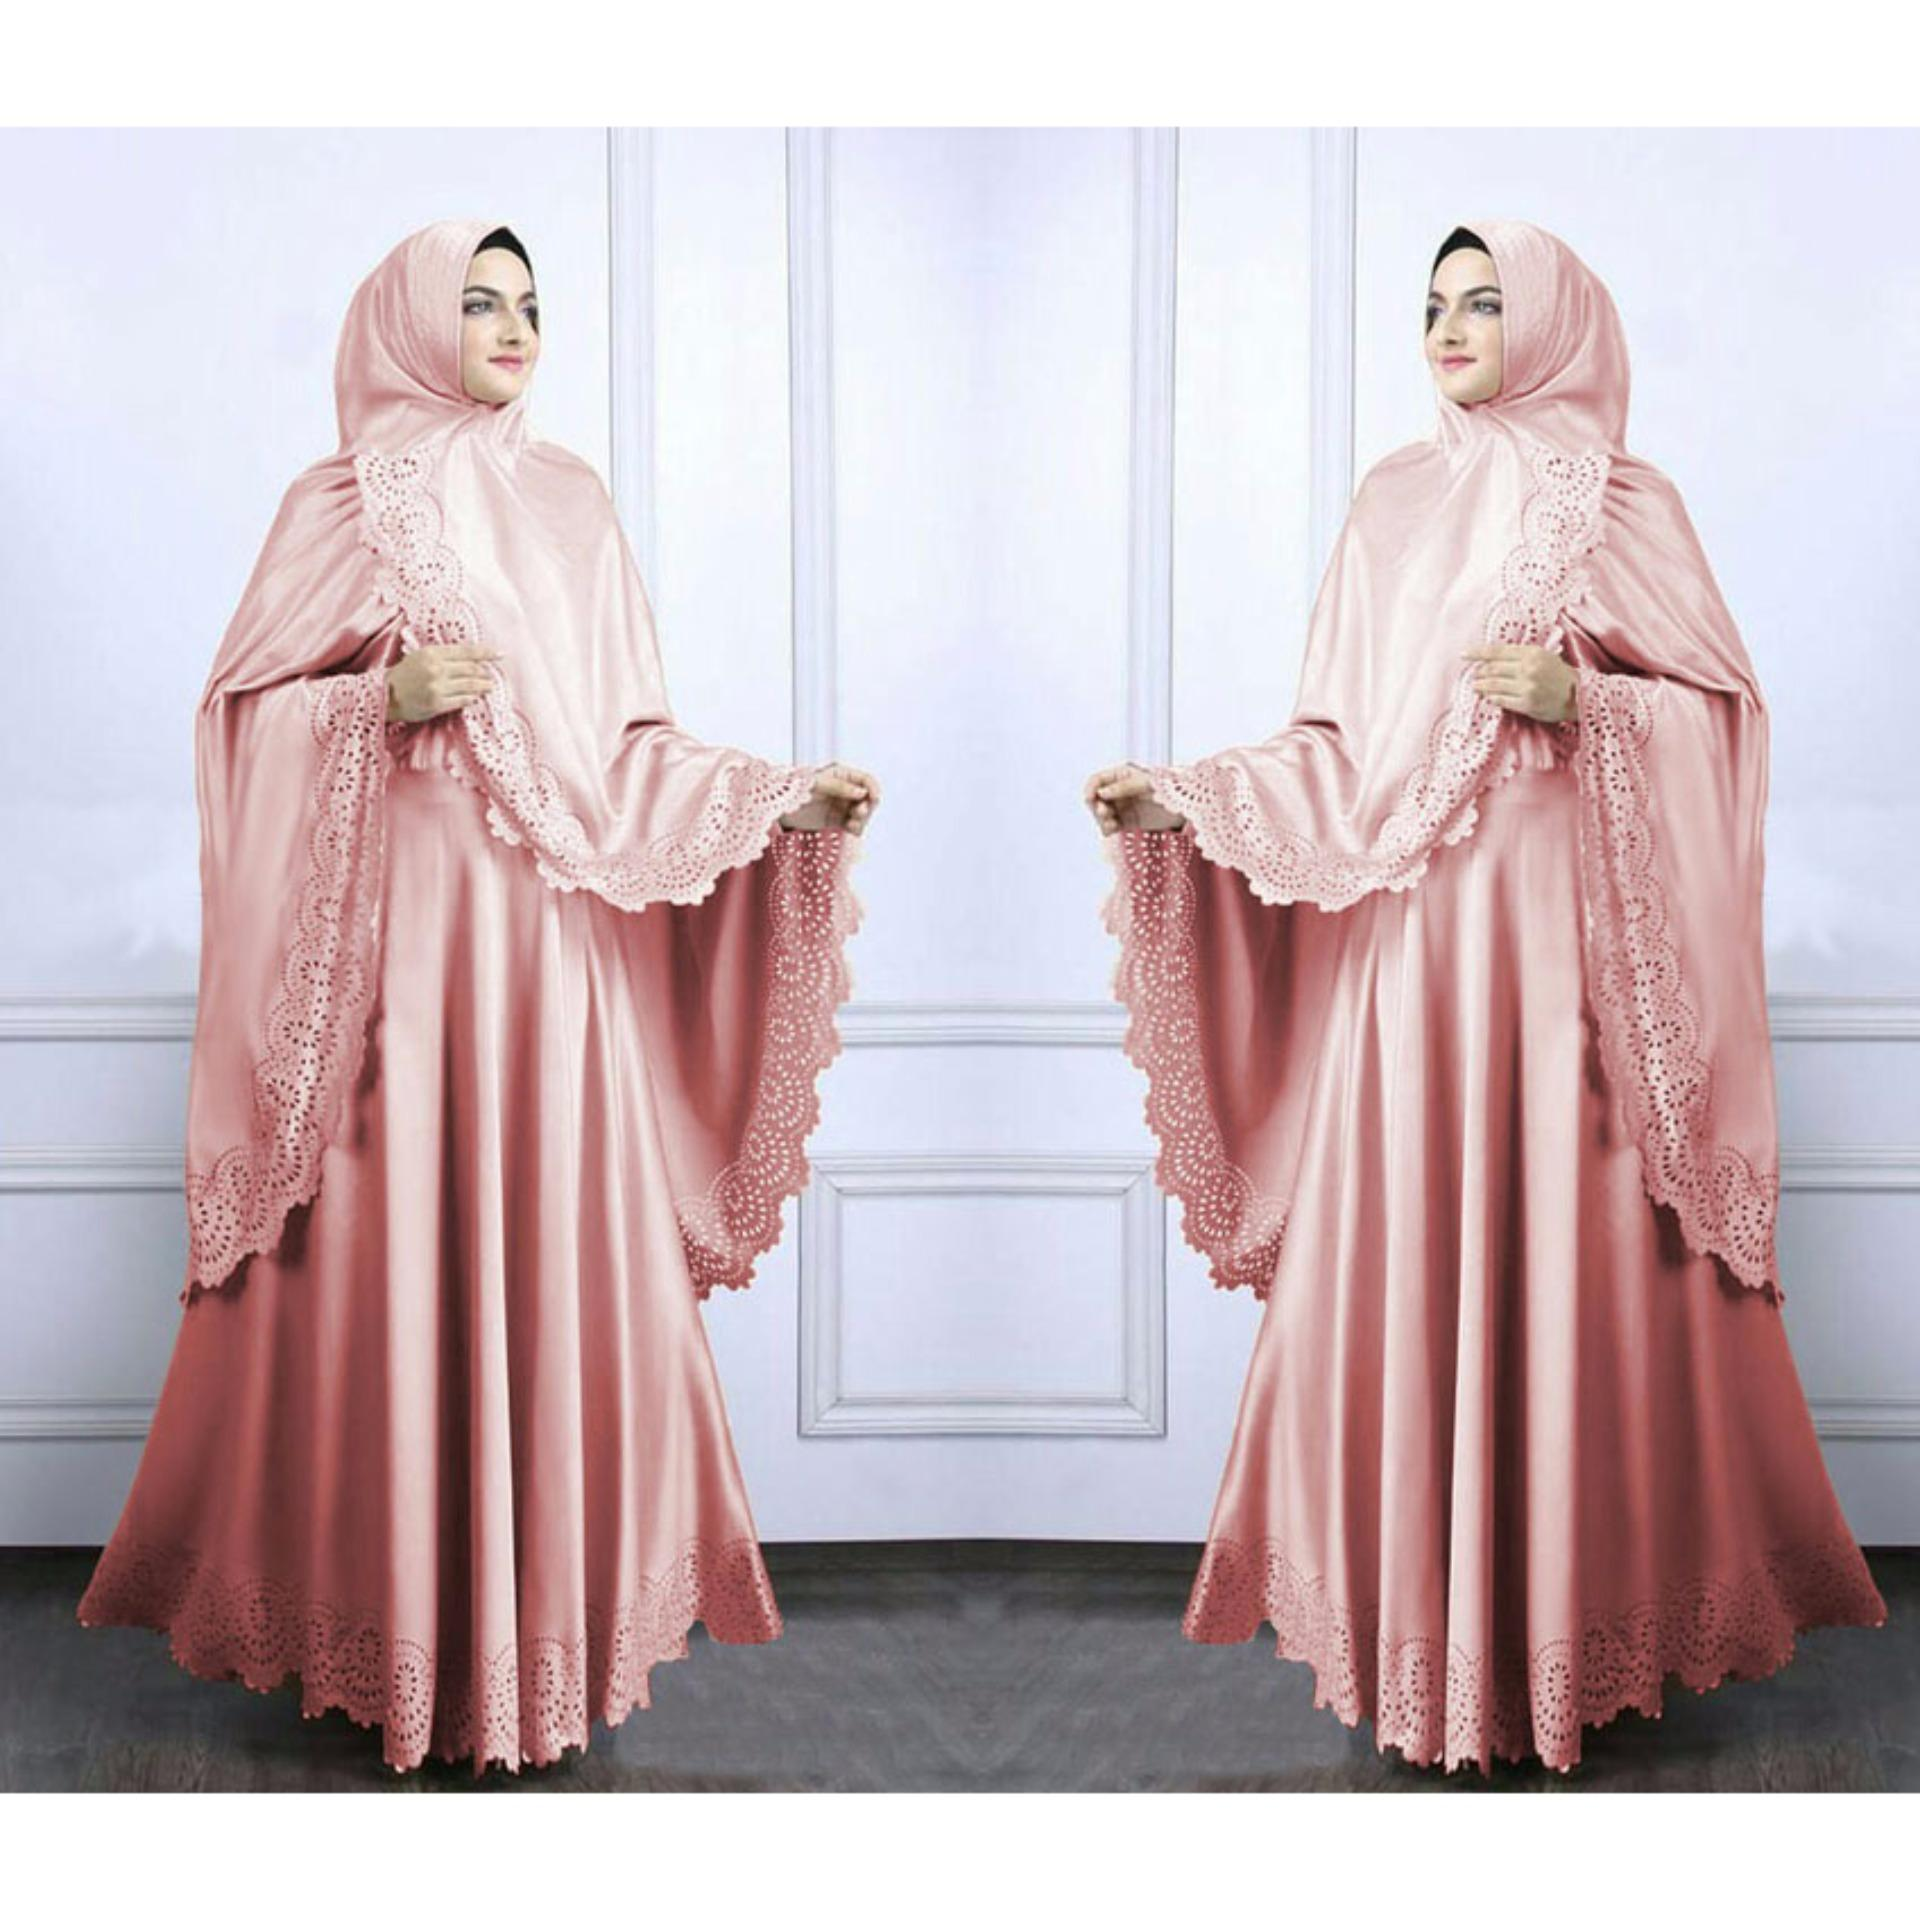 Harga Grateful Syari Zahwa Dusty Pink Grateful Ori